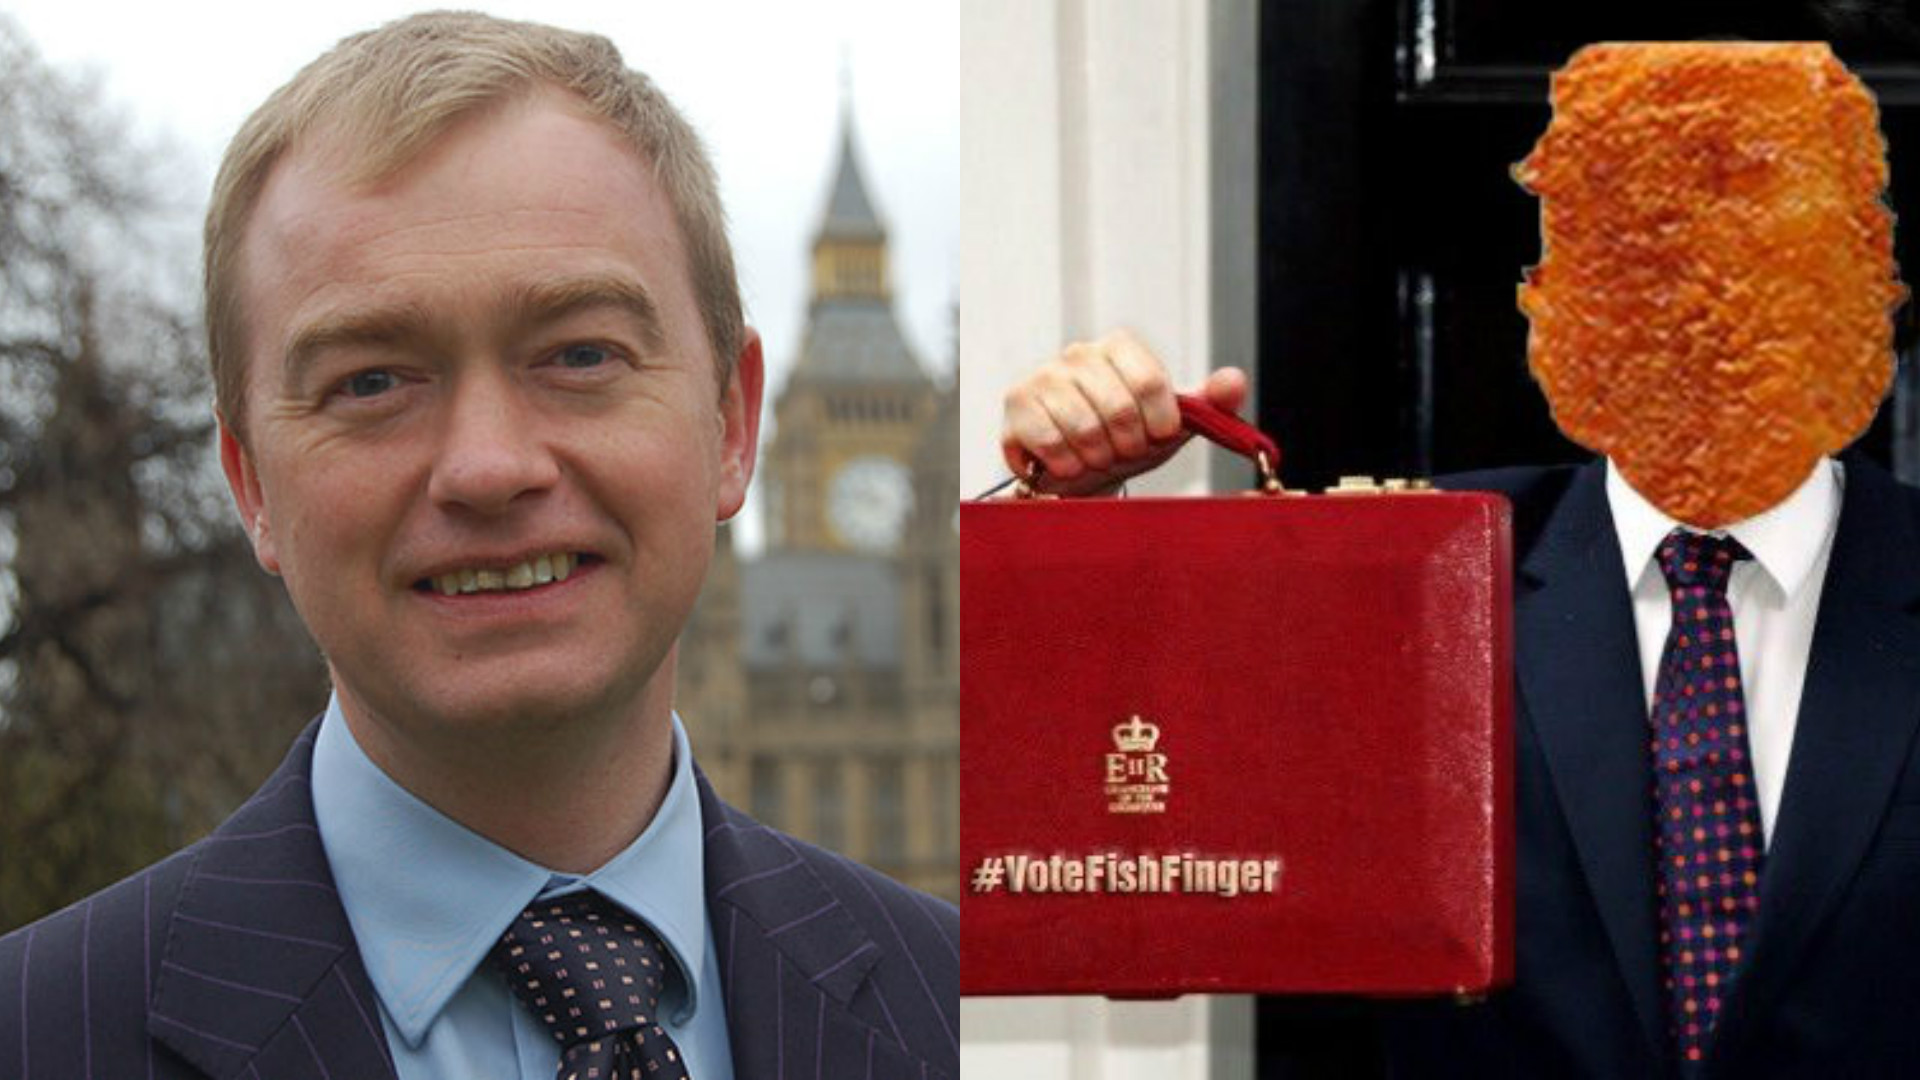 A picture of Tim Farron and a fish finger